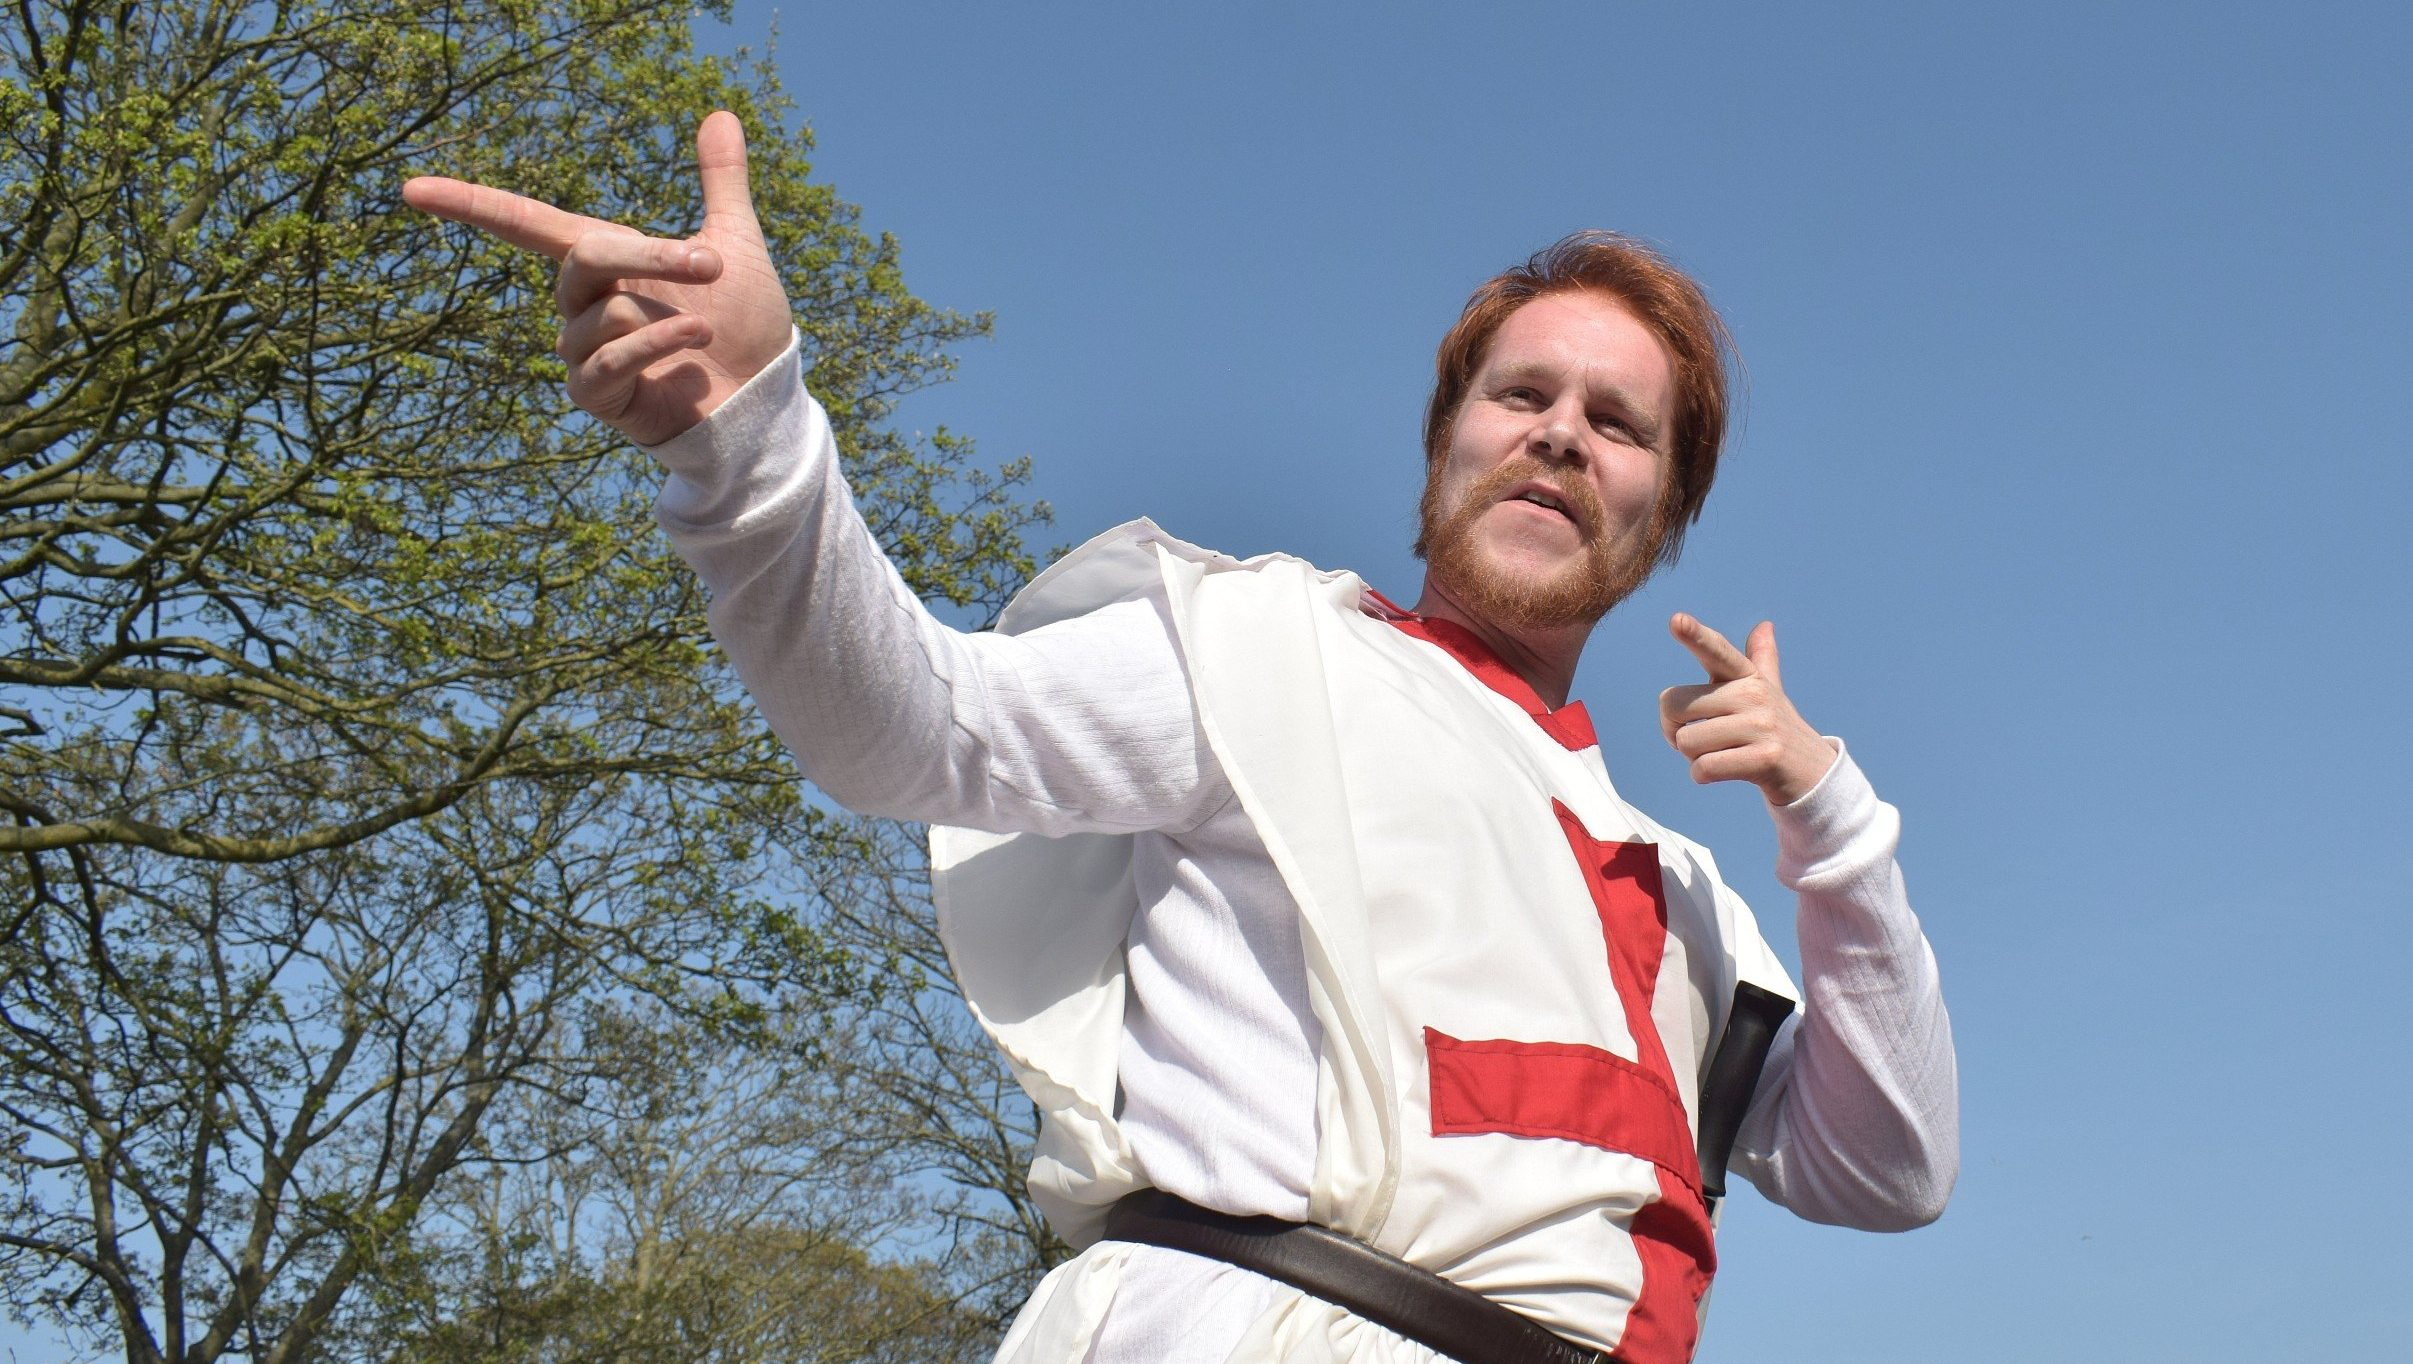 Ginger haired man wearing a knight's outfit and pointing - image by CJGriffiths